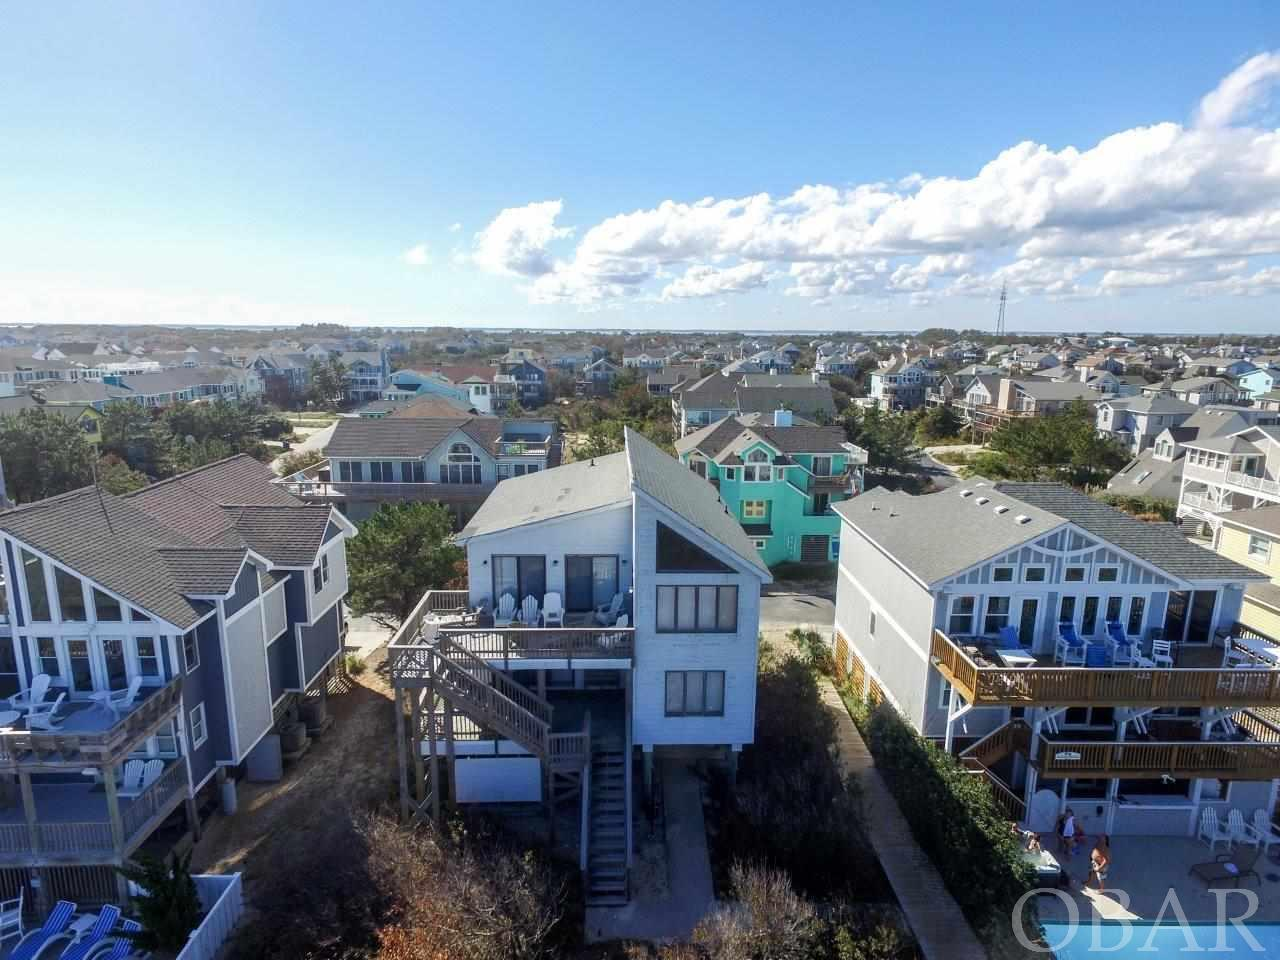 705 Mainsail Arch,Corolla,NC 27927,5 Bedrooms Bedrooms,3 BathroomsBathrooms,Residential,Mainsail Arch,97512